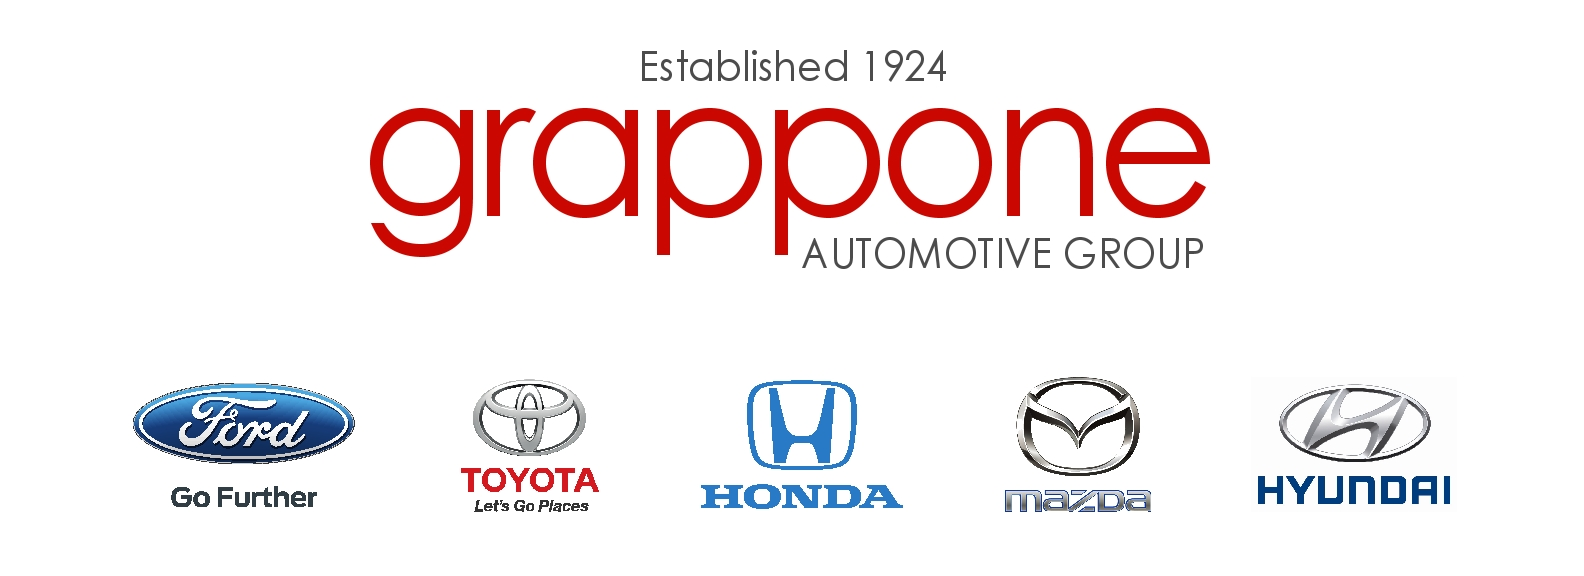 Grappone Automotive Group.png